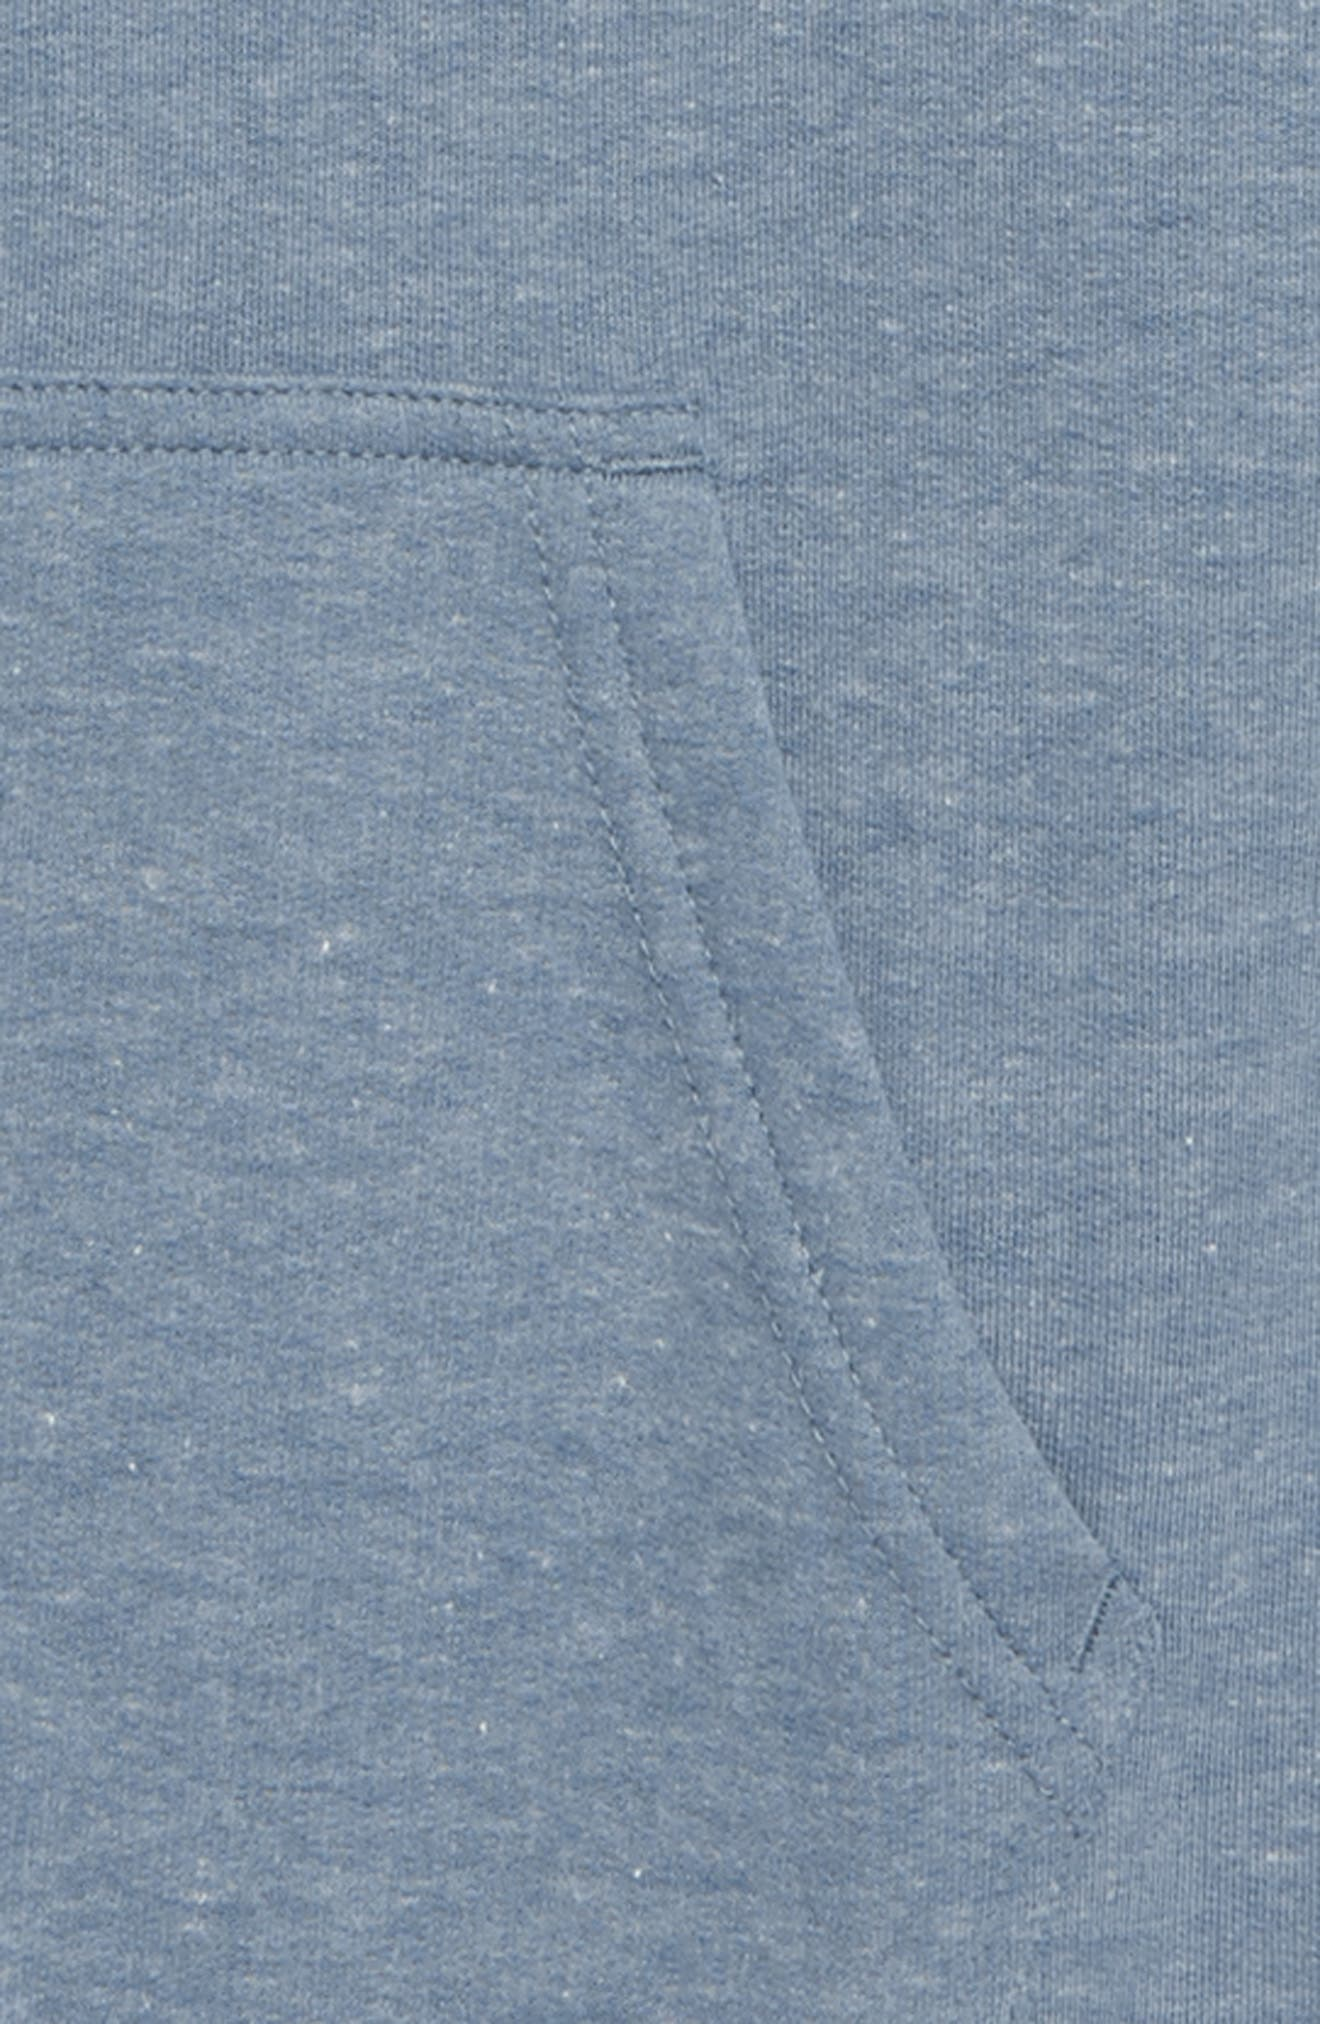 All Day Hoodie,                             Alternate thumbnail 2, color,                             Washed Blue